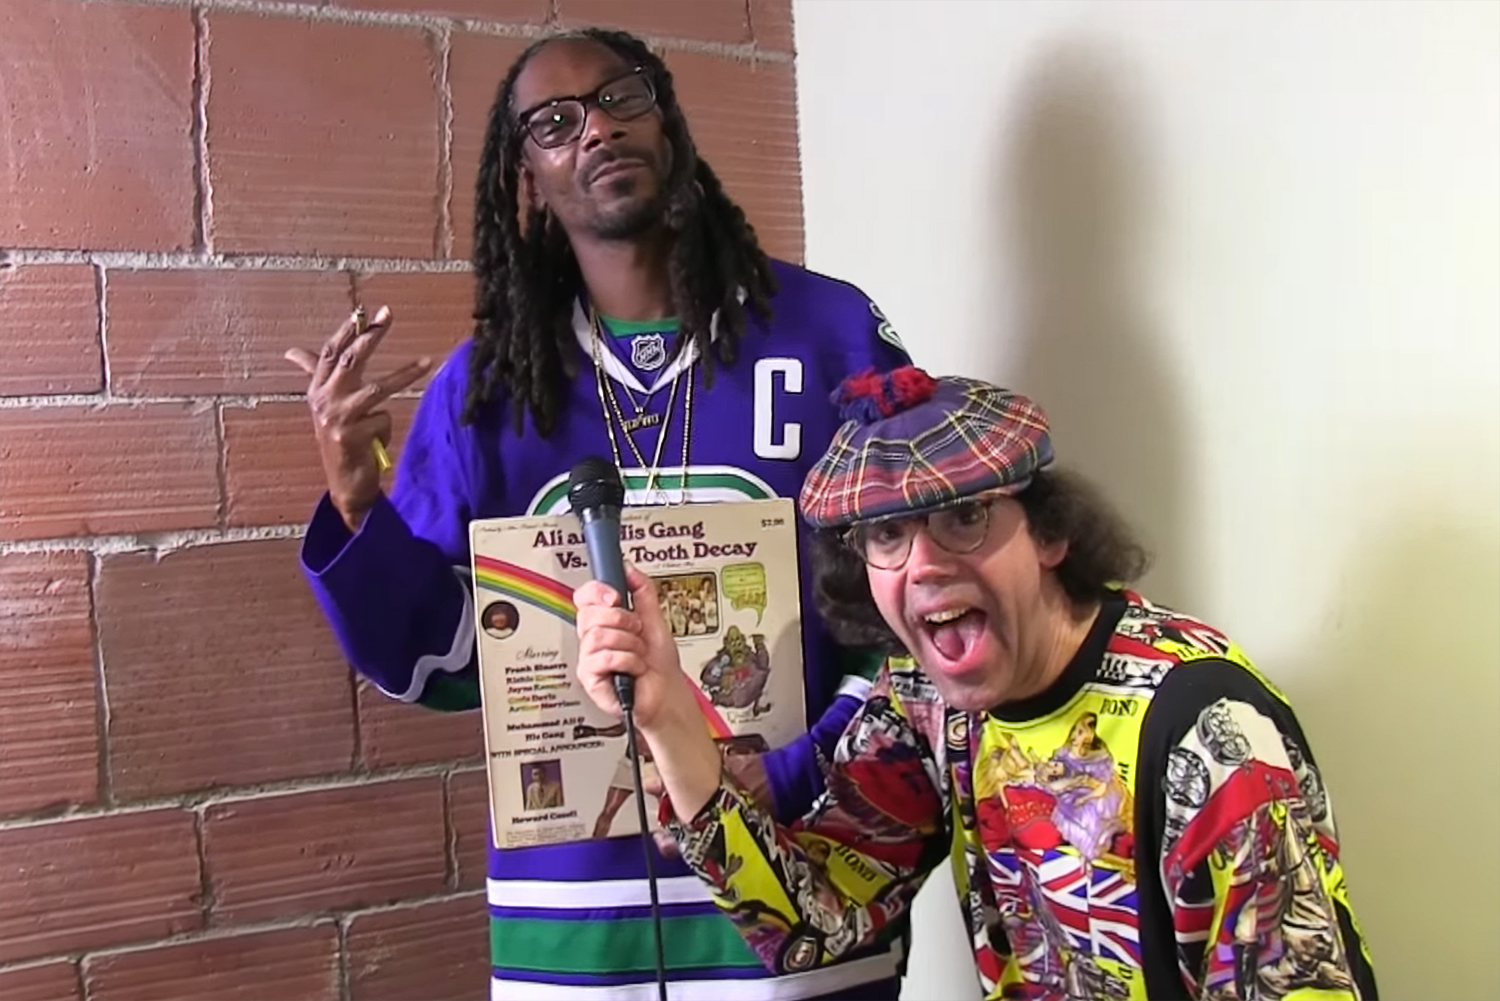 Nardwuar vs. Snoop Dogg: Find out Who Owes Him Money